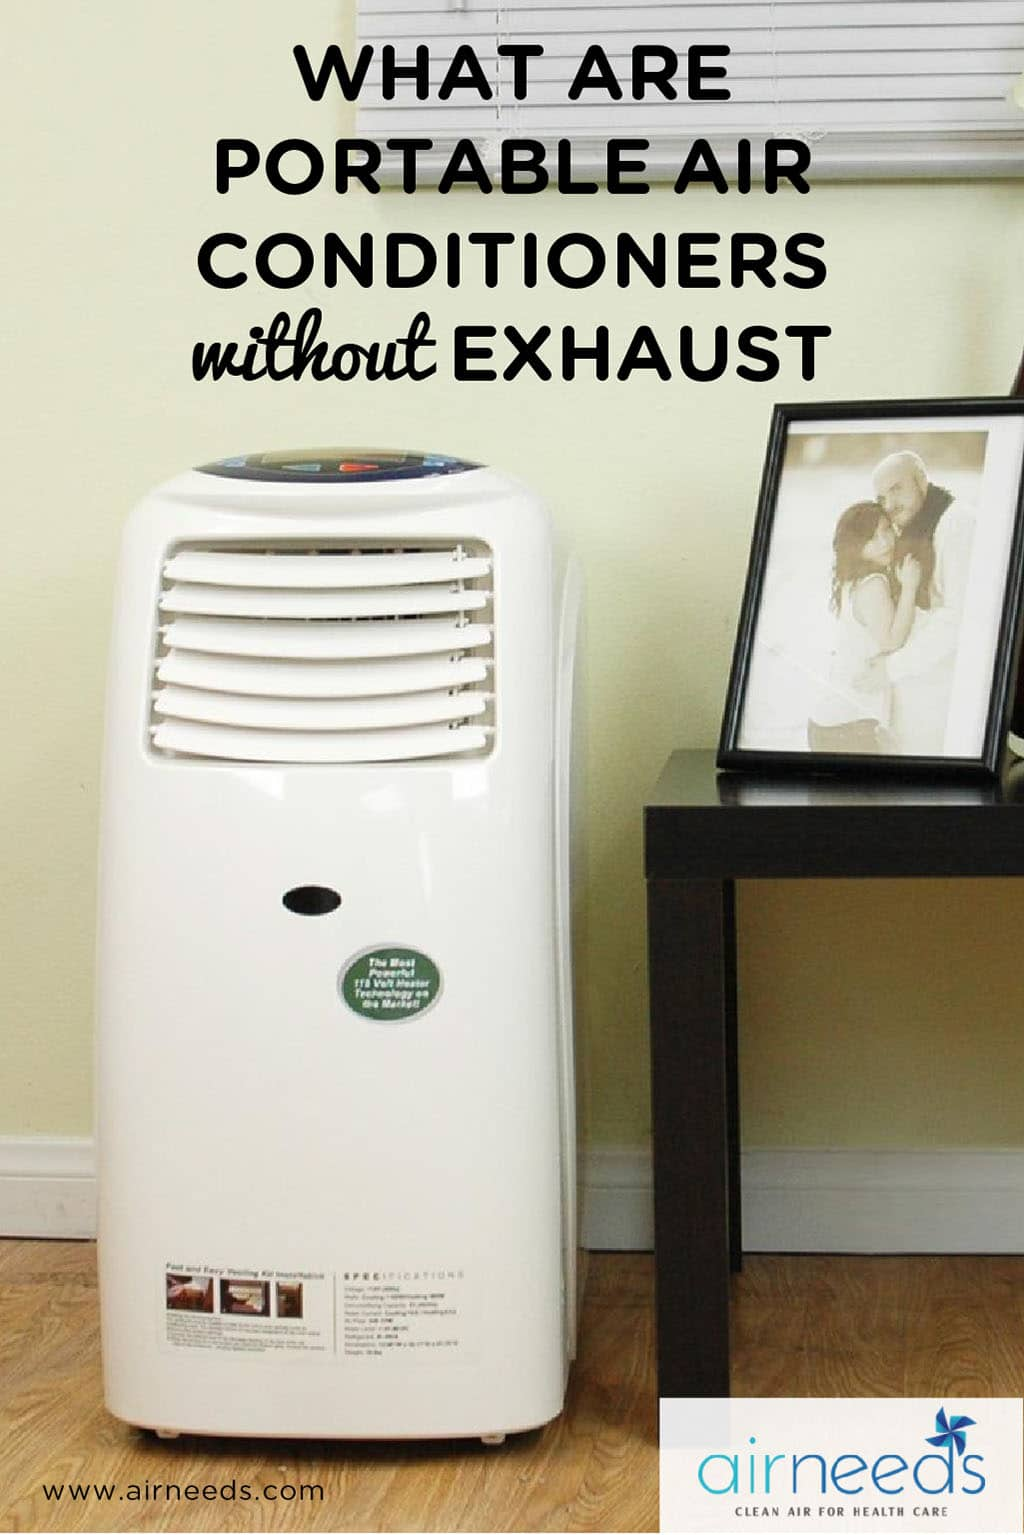 #634A27 Air Conditioner Exhaust Highest Rated 13566 Portable Air Conditioner Without Exhaust Vent img with 1024x1535 px on helpvideos.info - Air Conditioners, Air Coolers and more